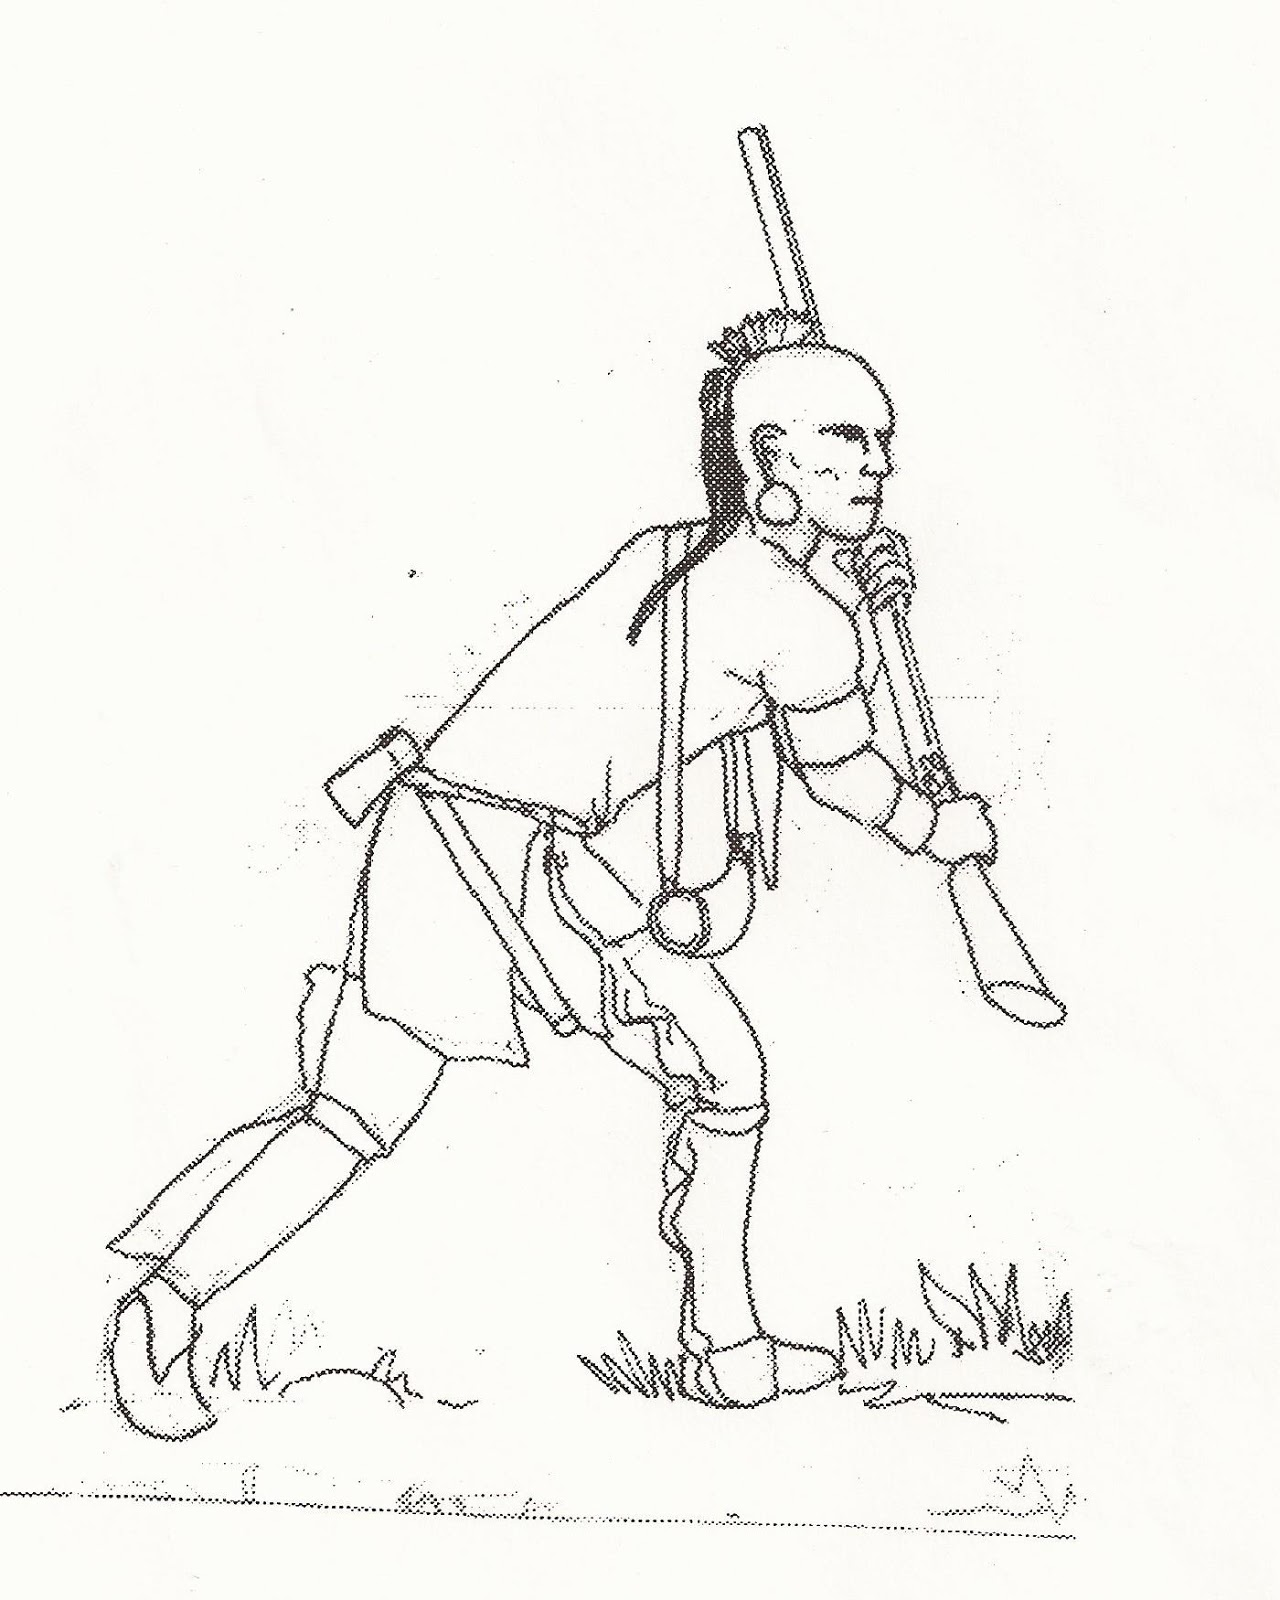 1280x1600 Flintlock And Tomahawk French And Indian War By Ralph Mitchard